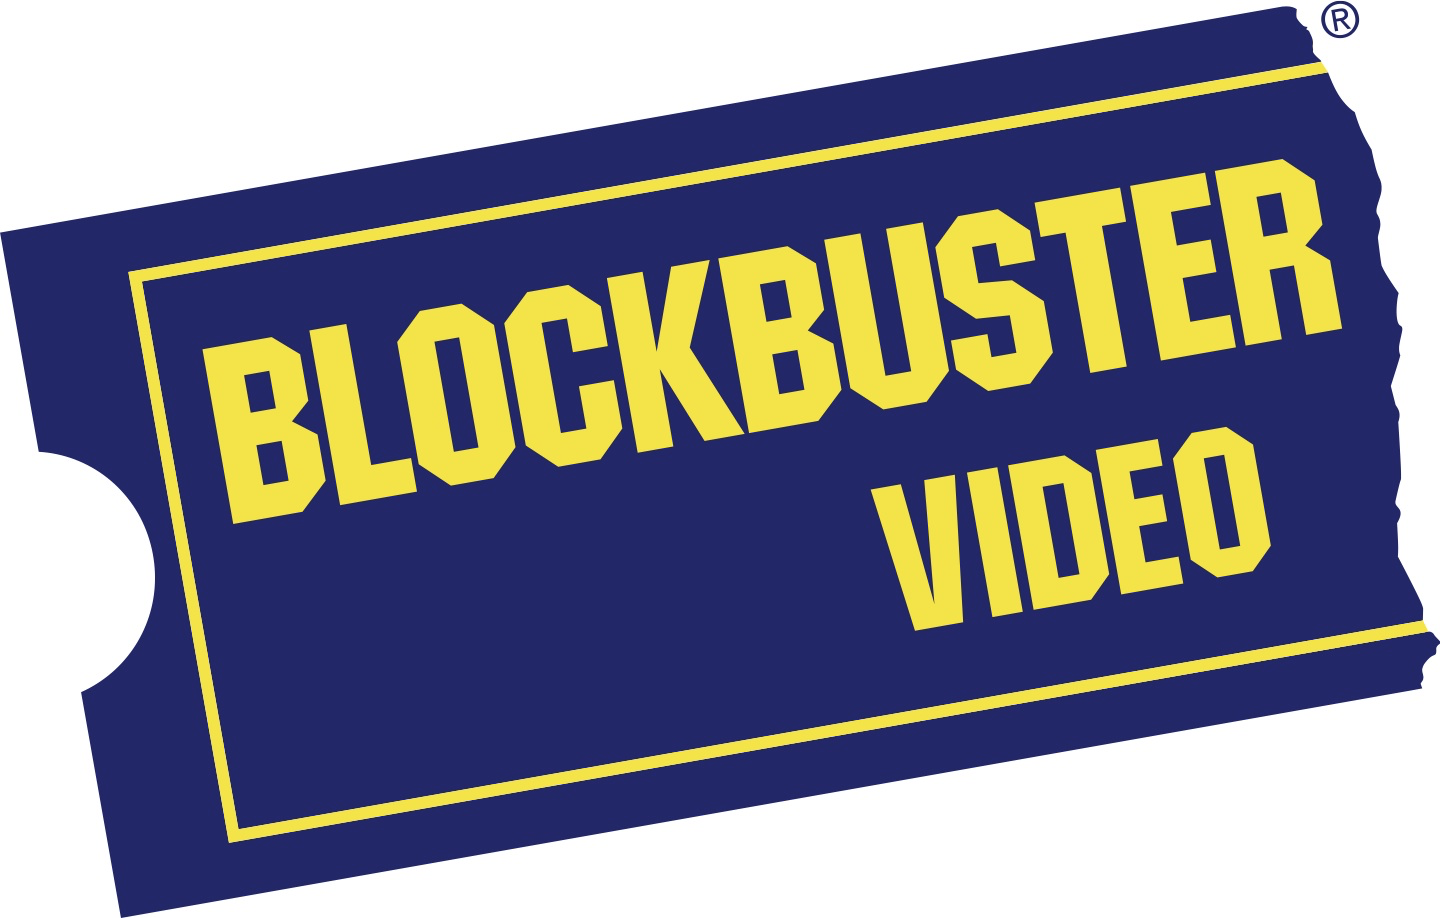 There's only one Blockbuster Video store left…..